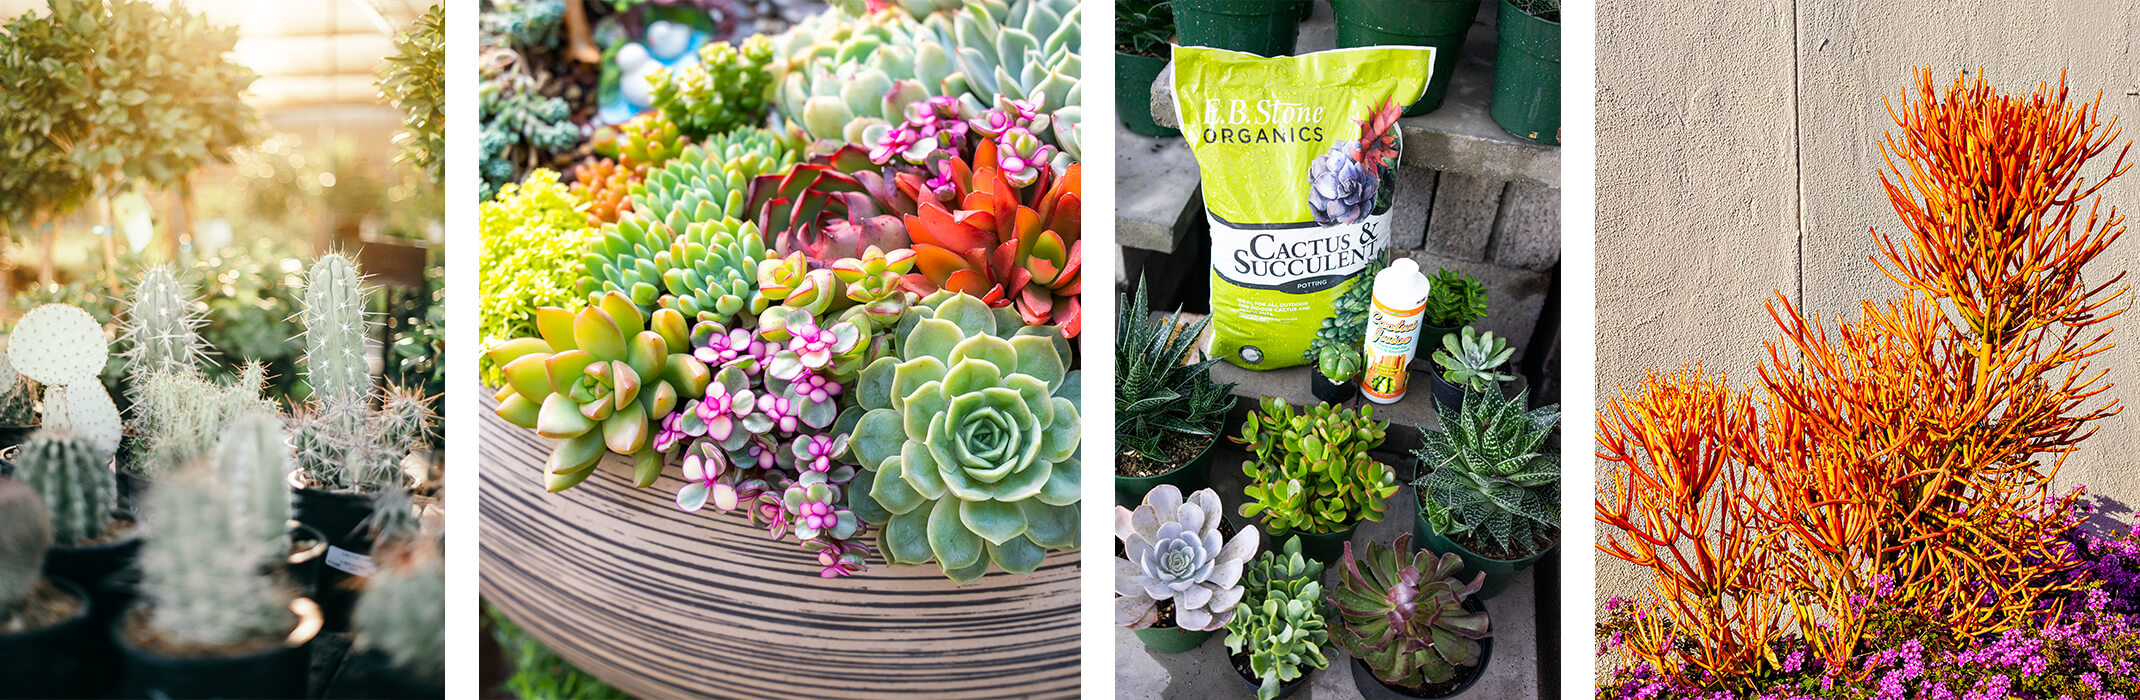 4 Images: a variety of cacti, a variety of colorful potted succulents, a variety of succulents on display with a bag of EB Stone Organics Cactus & Succulent Potting Soil and Cactus Juice Fertilizer, and orange Firestick succulents near purple plant